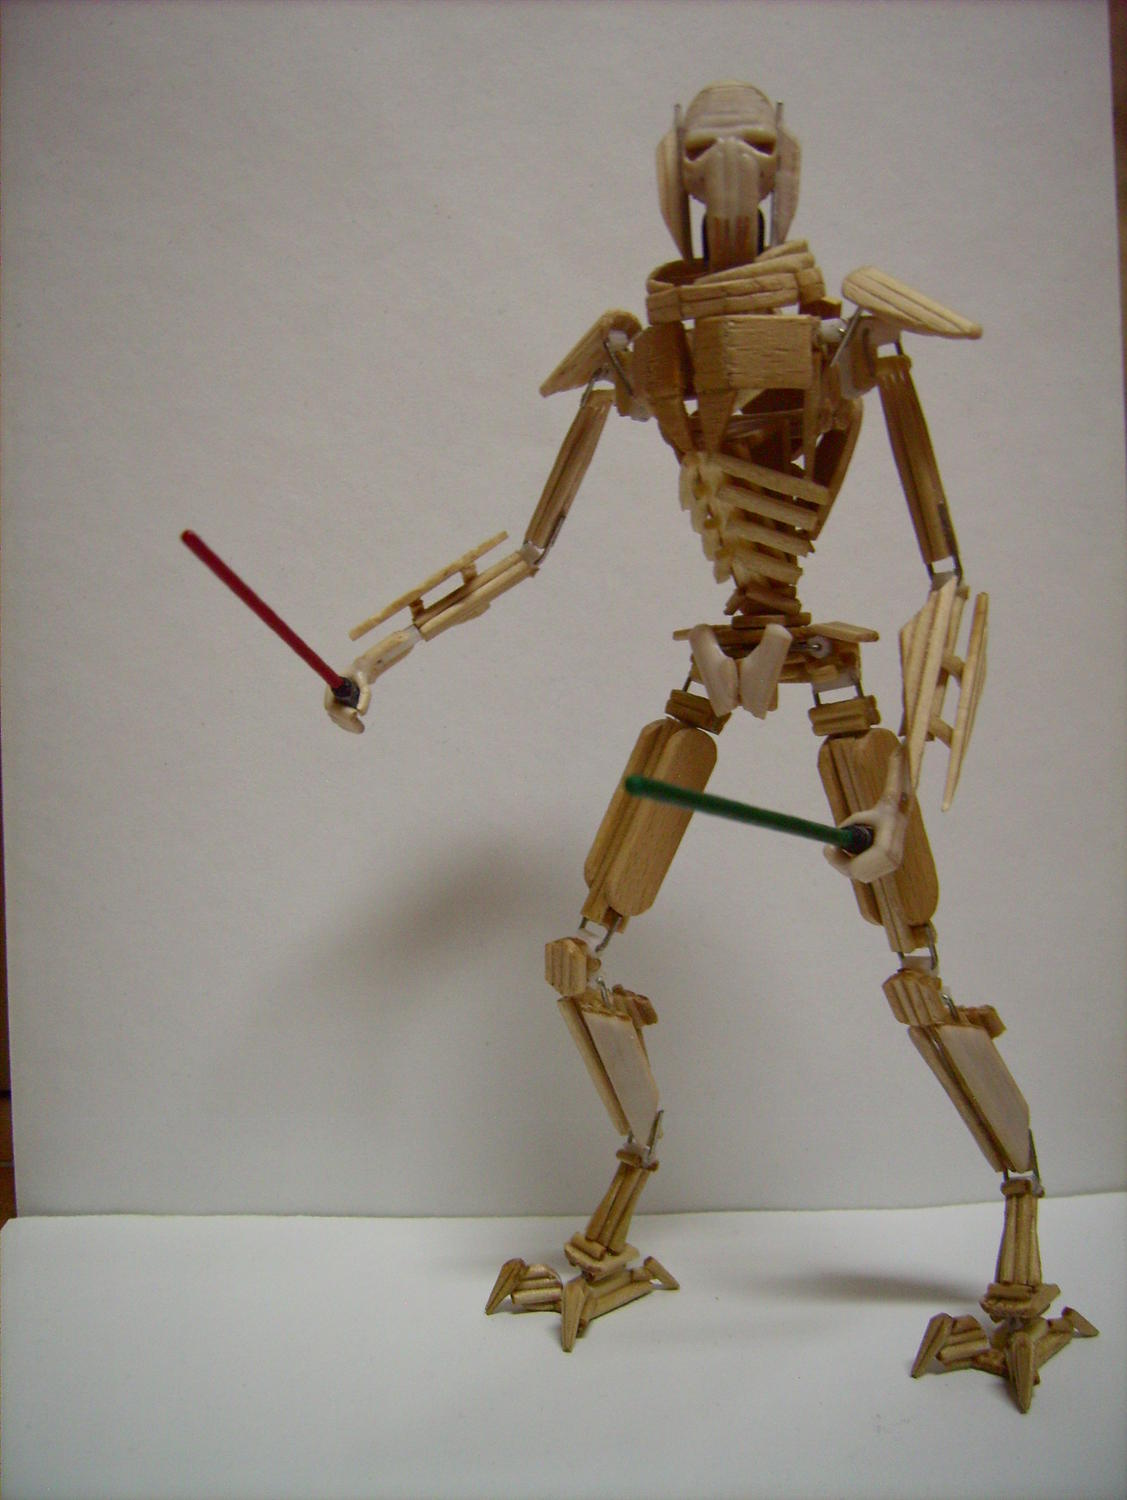 Star Wars General Grievous Toys : General grievous star wars toy discussion at toyark